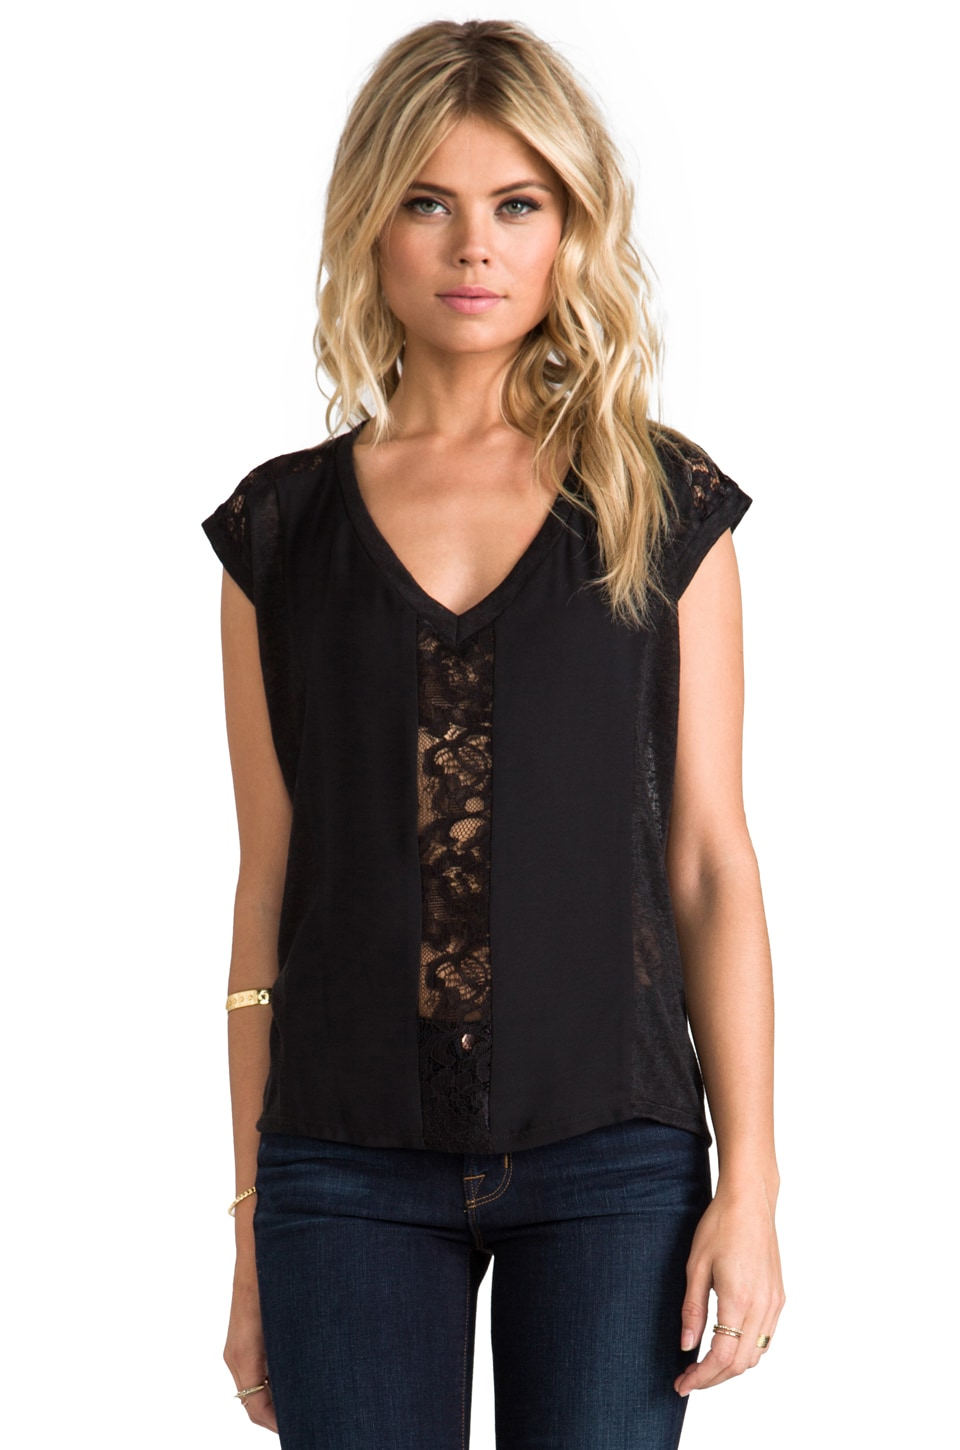 Alexis Nicoline Top in Black Lace